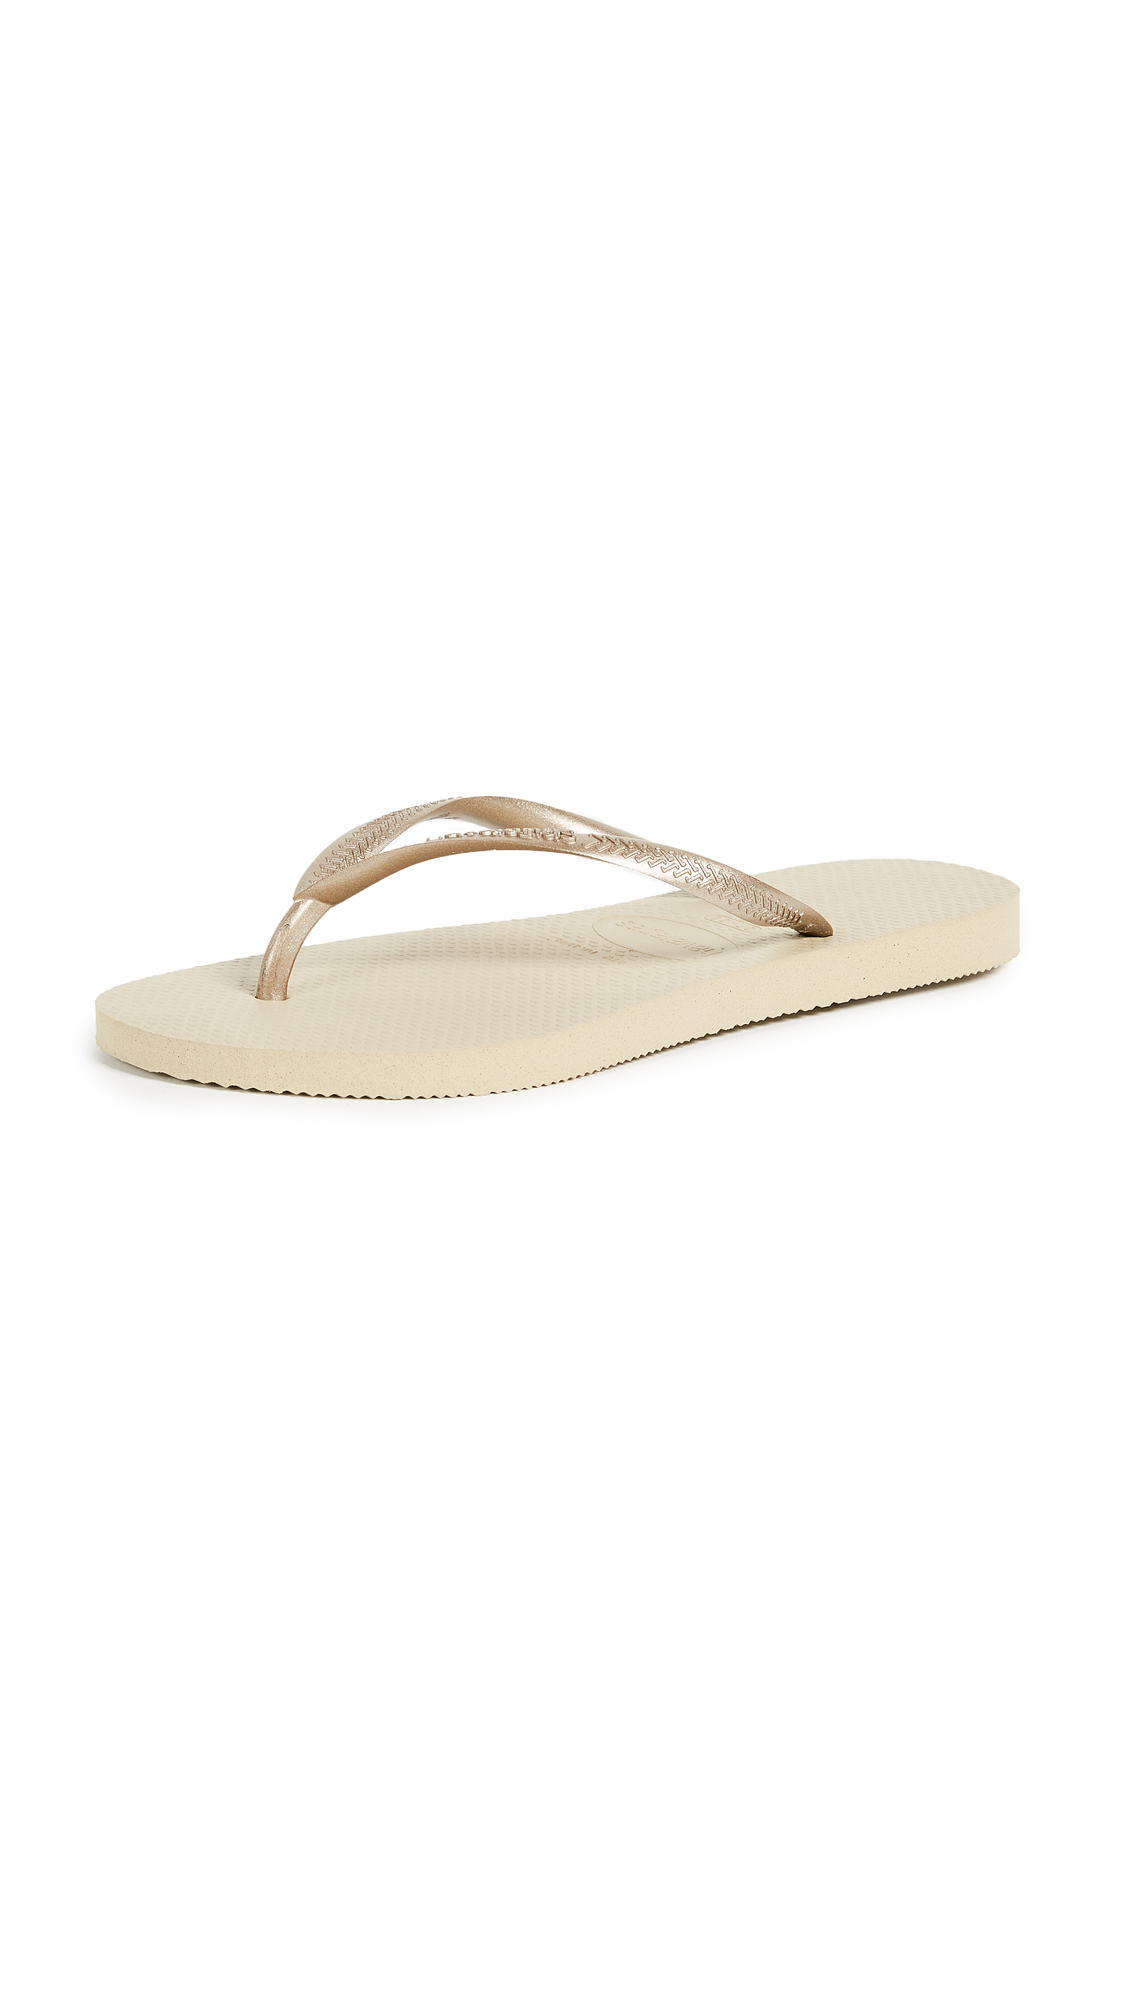 Havaianas Slim Flip Flops - Sand Grey/Light Golden